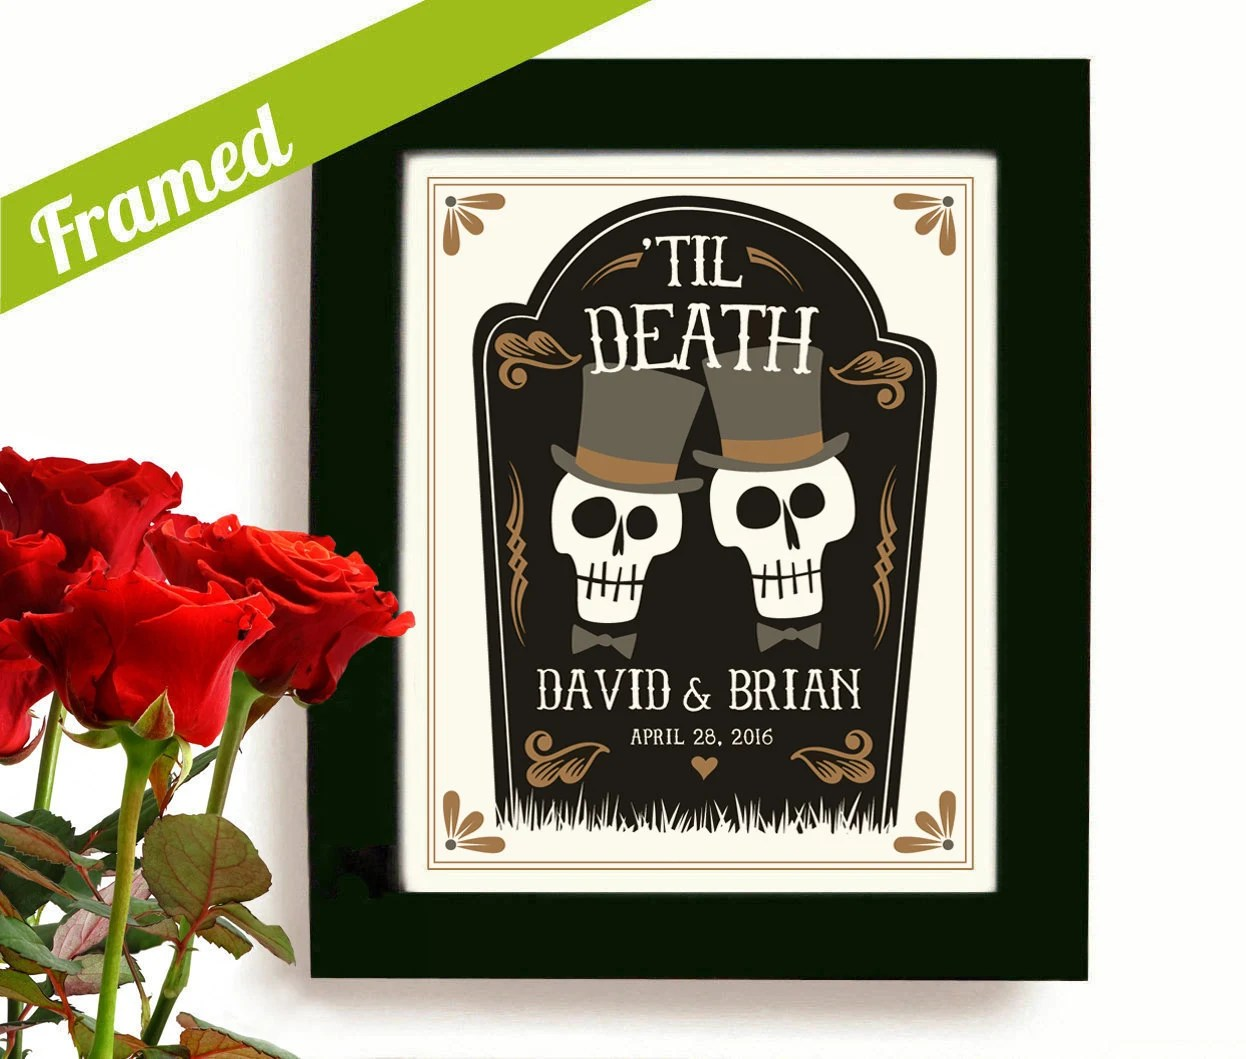 gay marriage gift wedding gift Gay Wedding Gift Personalized Day of the Dead Gay Marriage Newlywed Gift Gay Men Art Print for Gay Couples Goth Couple Gay Anniversary Gift